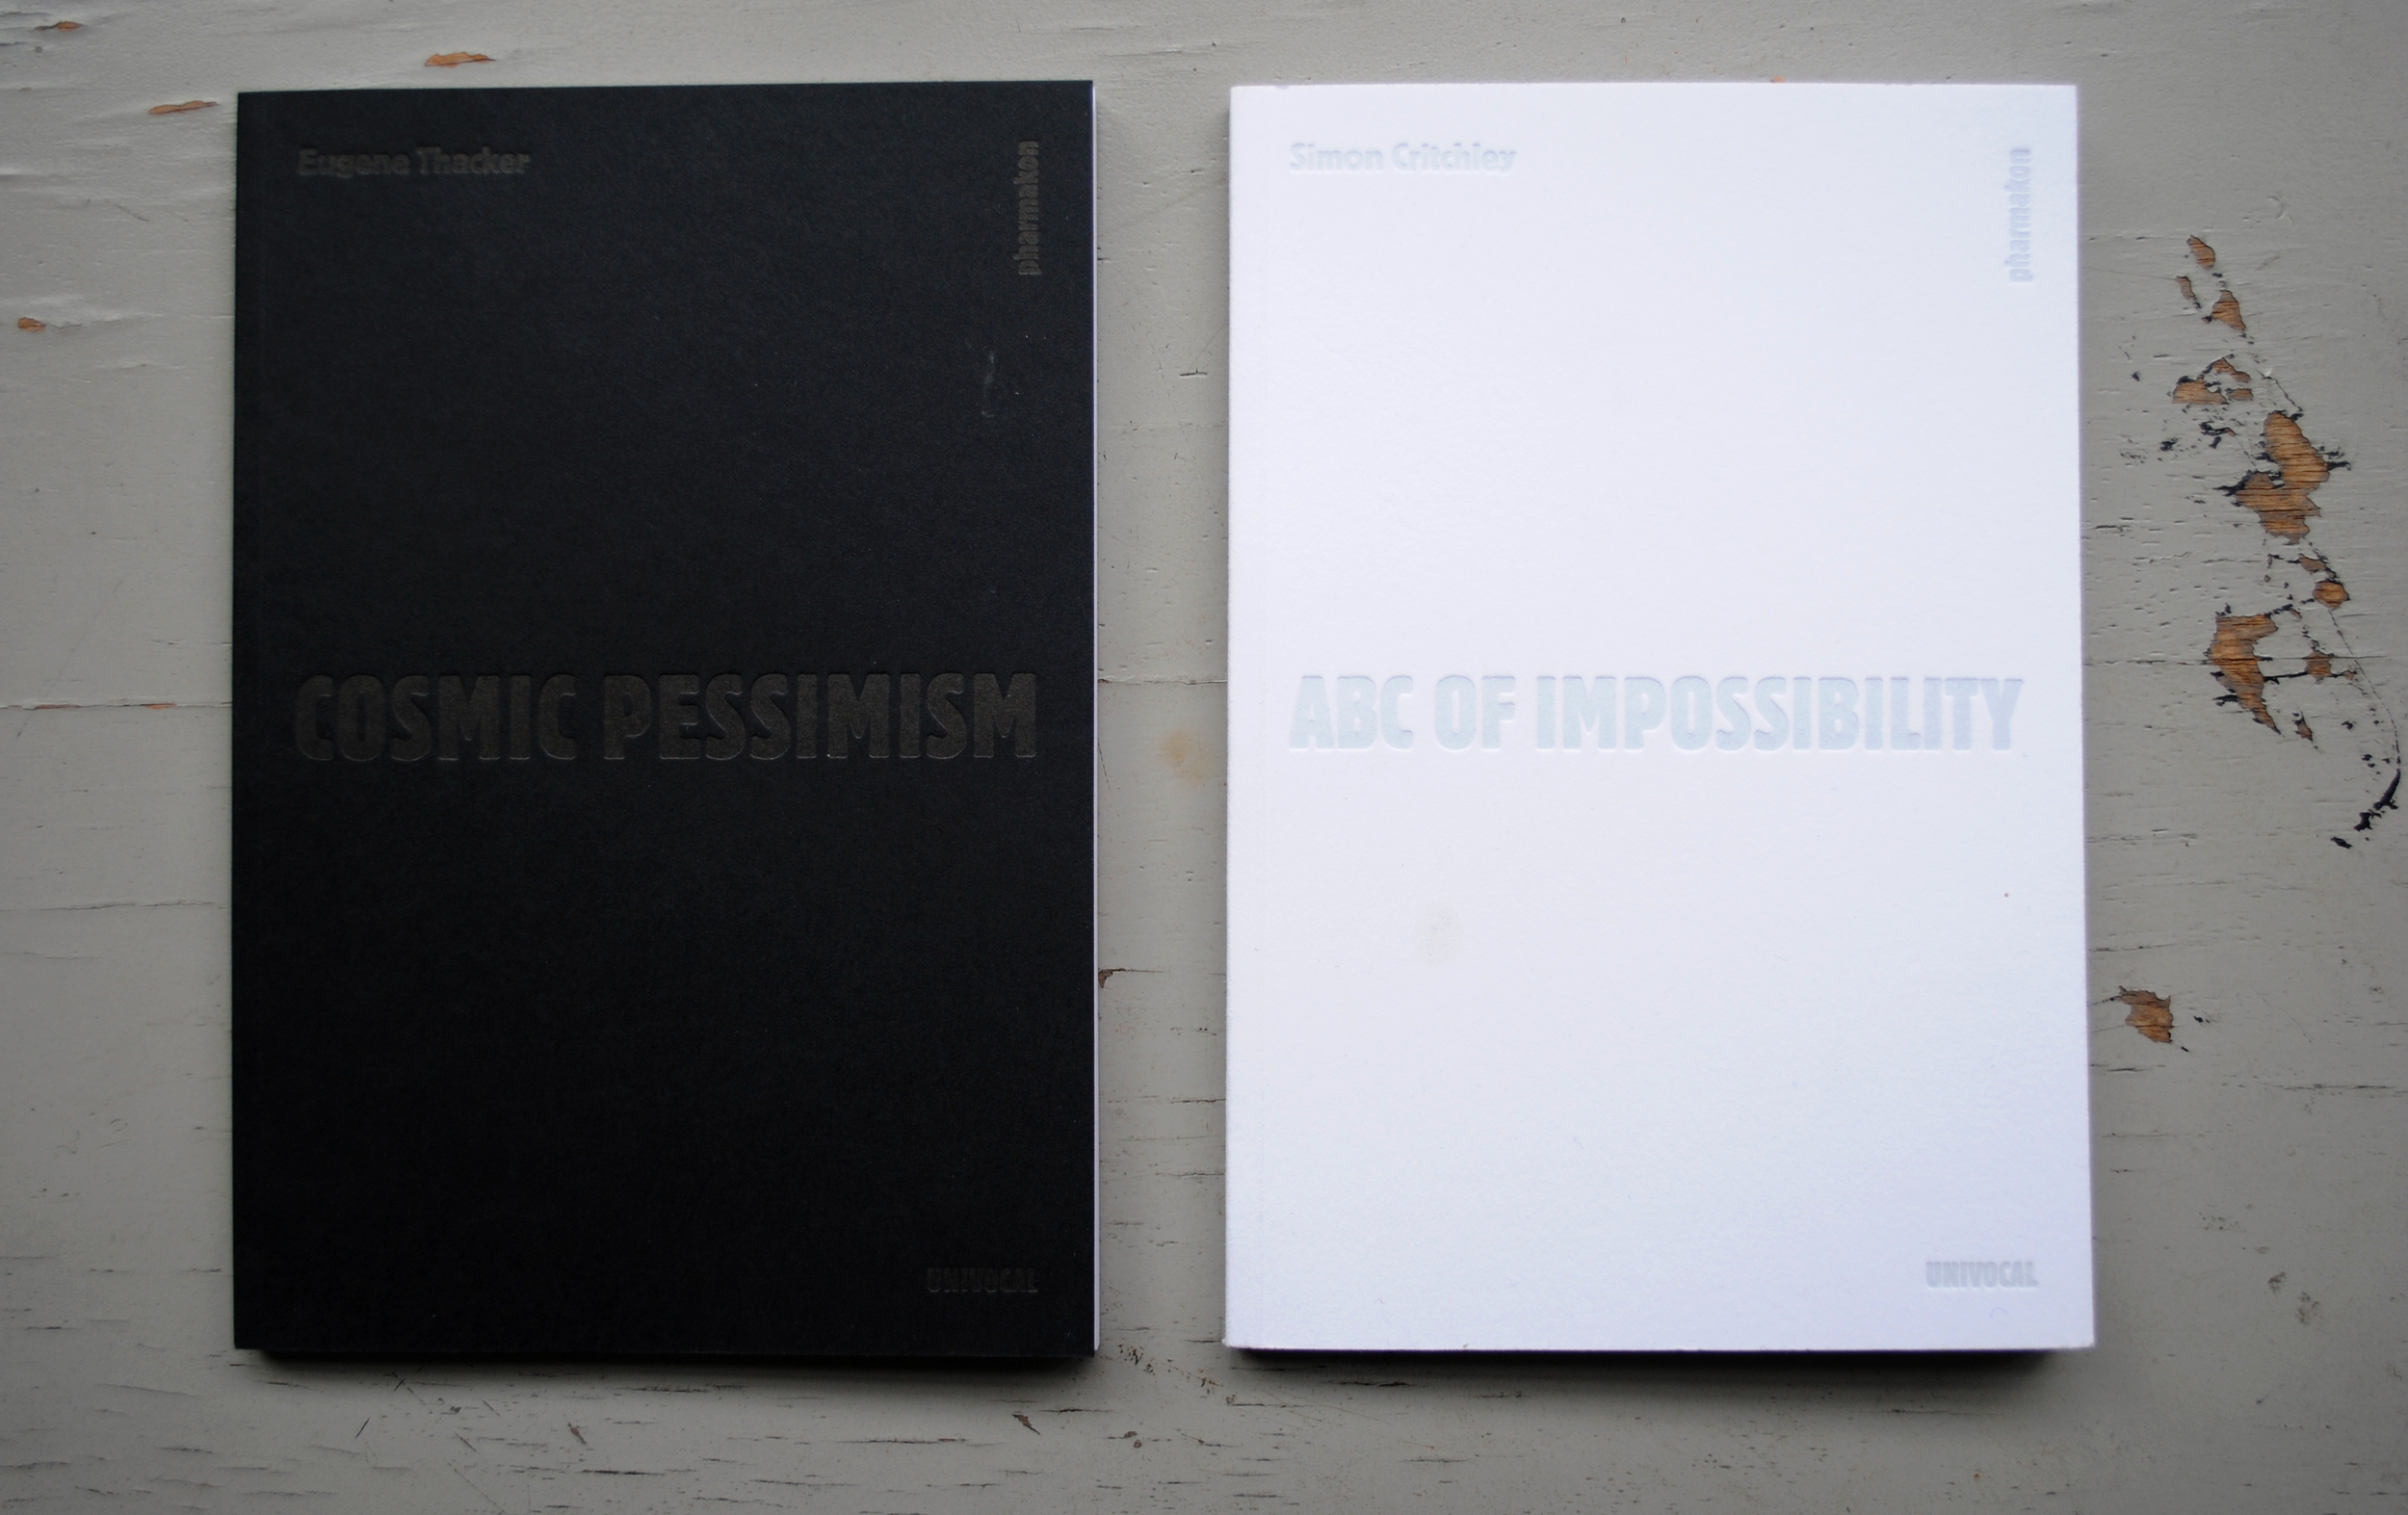 Cosmic Pessimism by  Eugene Thacker  and ABC of Impossibility by  Simon Critchley.  Eugene and Simon are professors at The New School in NYC.